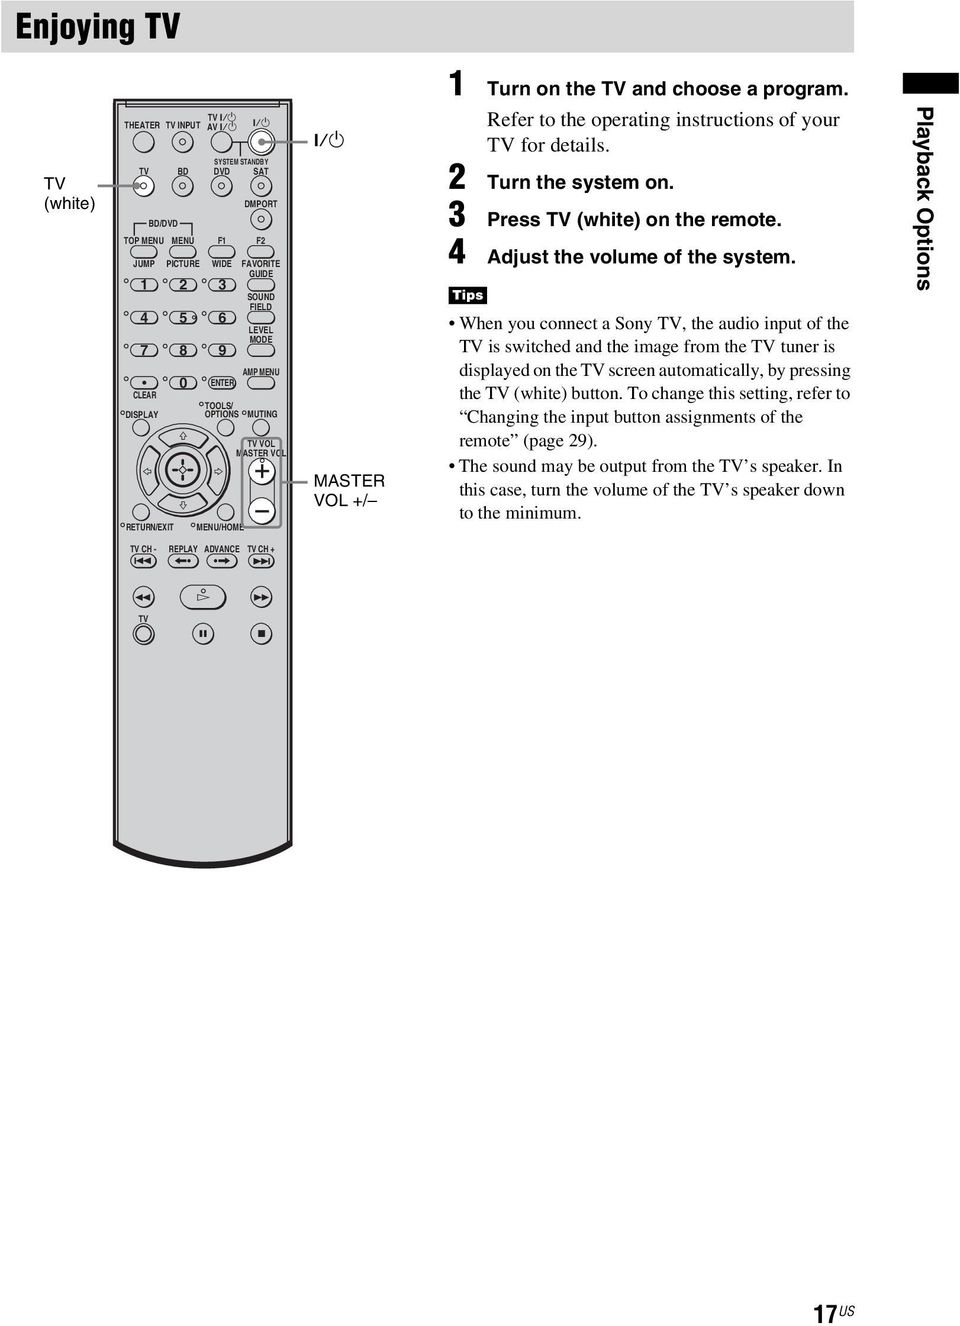 3 Press (white) on the remote. 4 Adjust the volume of the system.